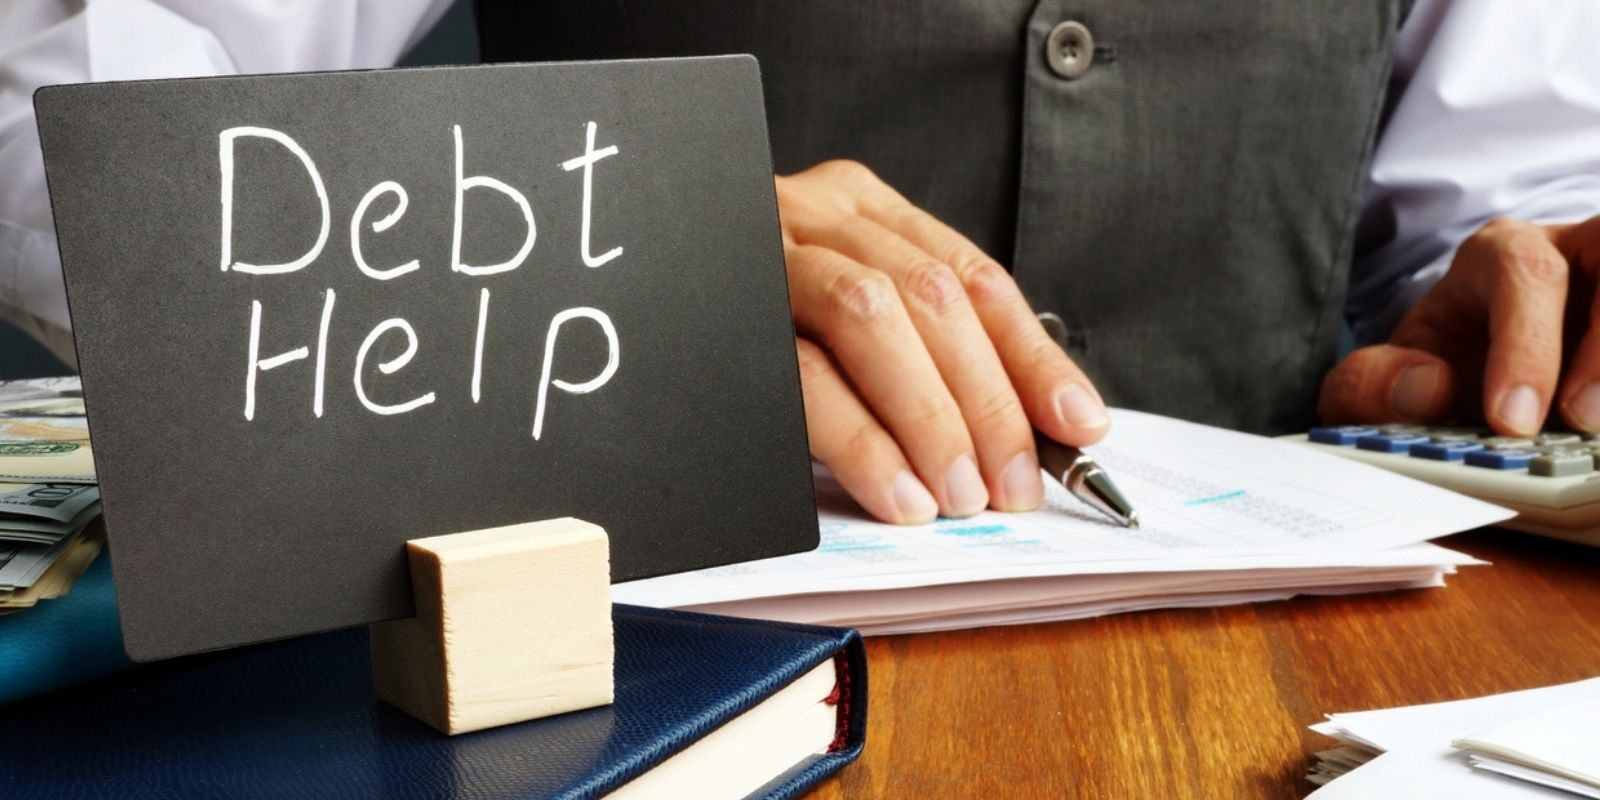 sign saying debt help and man writing